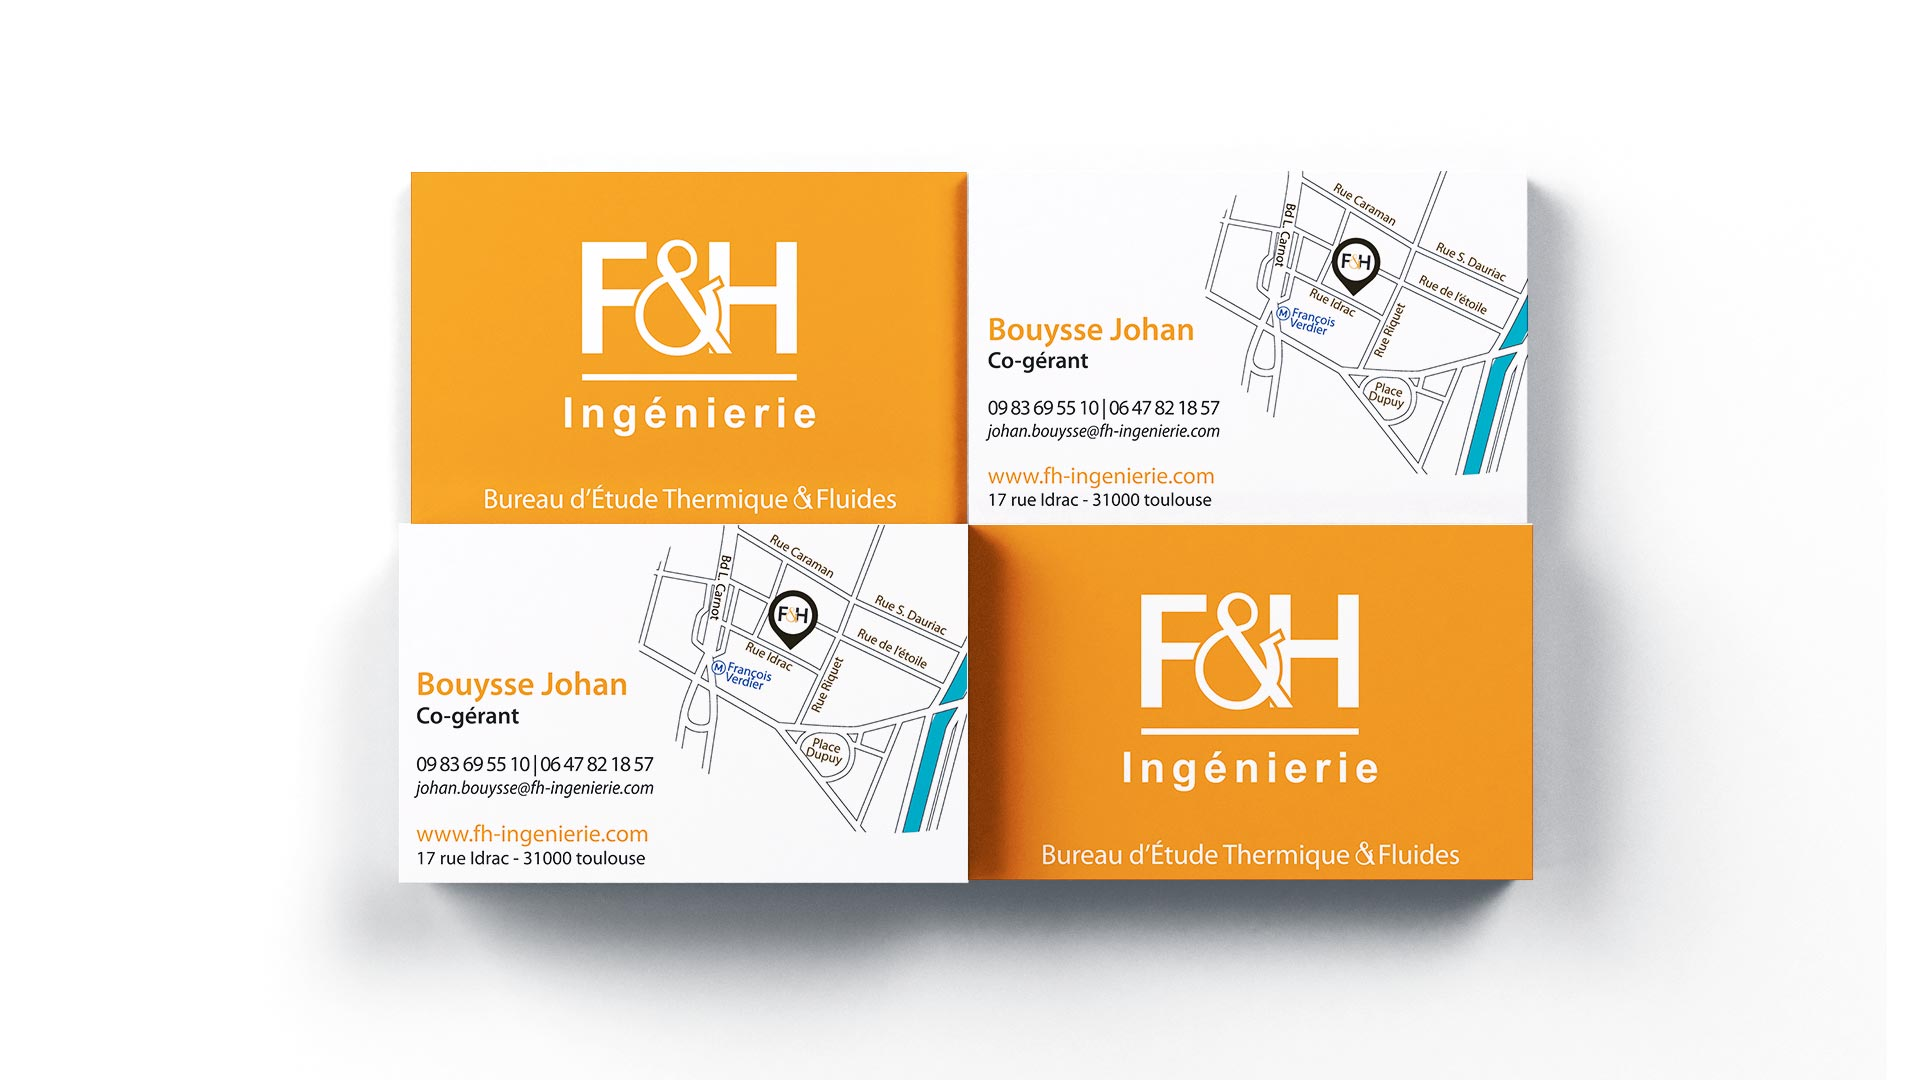 Logo Couleur FH Ingenierie Insertion Publicitaire Carte De Visite